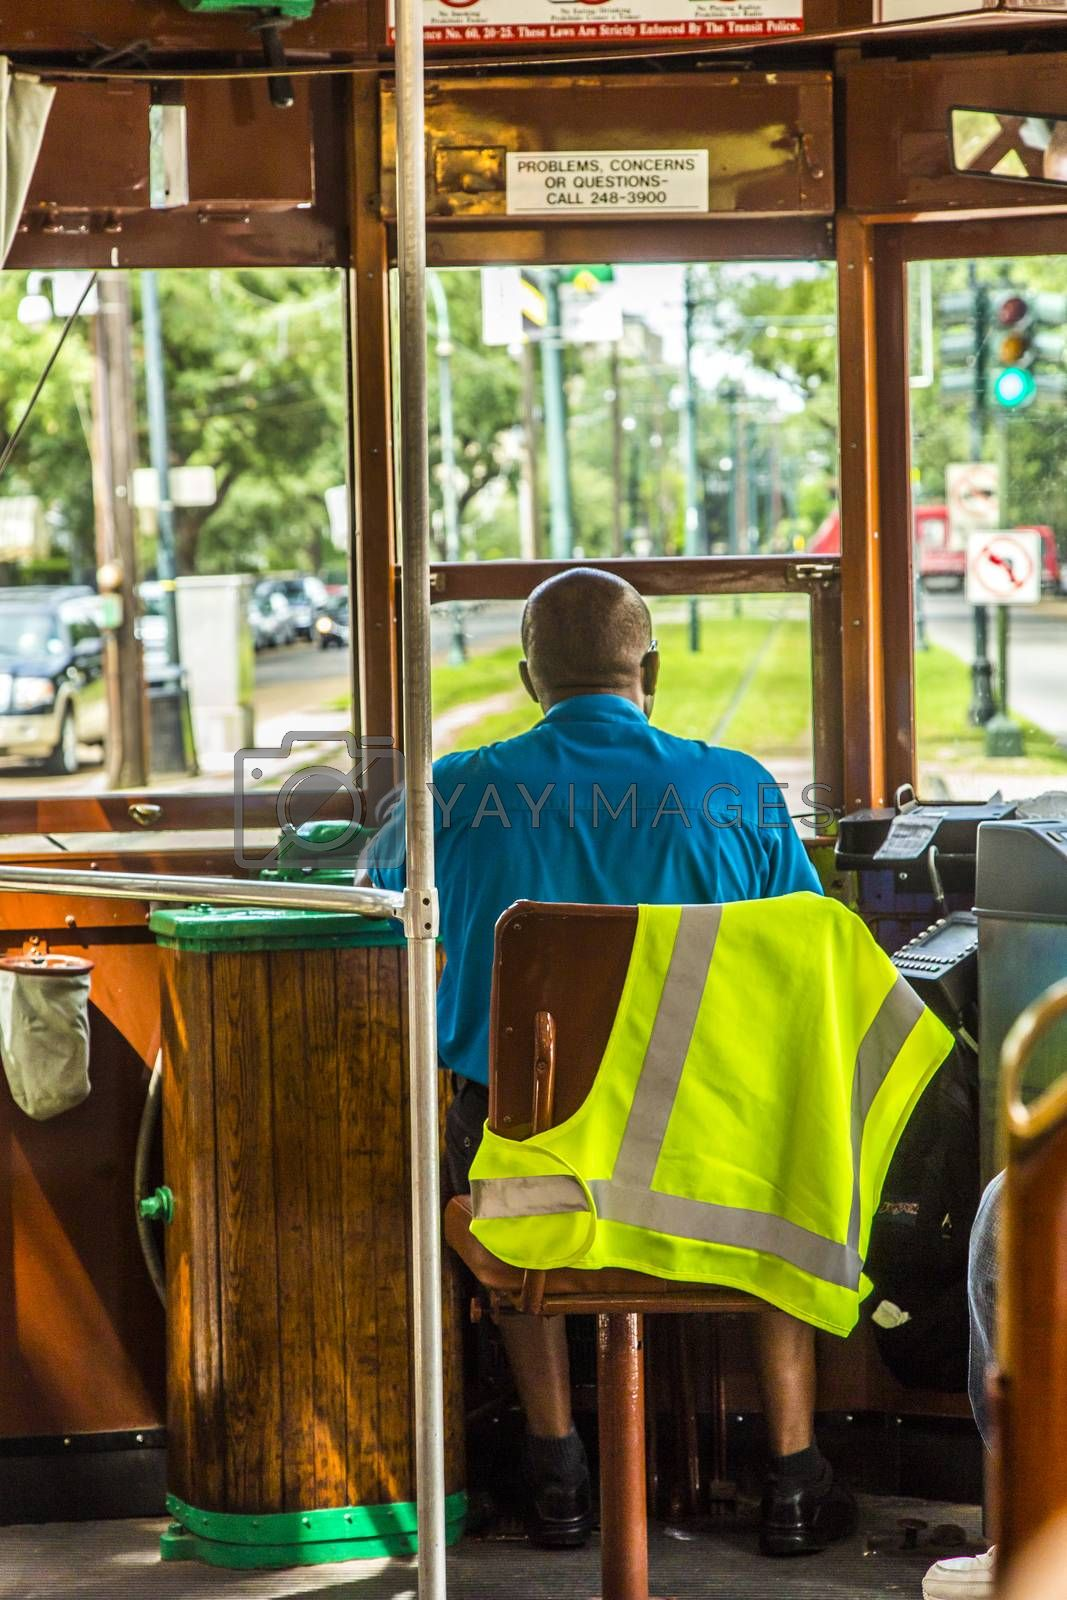 NEW ORLEANS - JULY 16, 2013:  conductor in the famous old Street car St. Charles line in New Orleans, USA. It is the oldest continually operating street car line in the world.